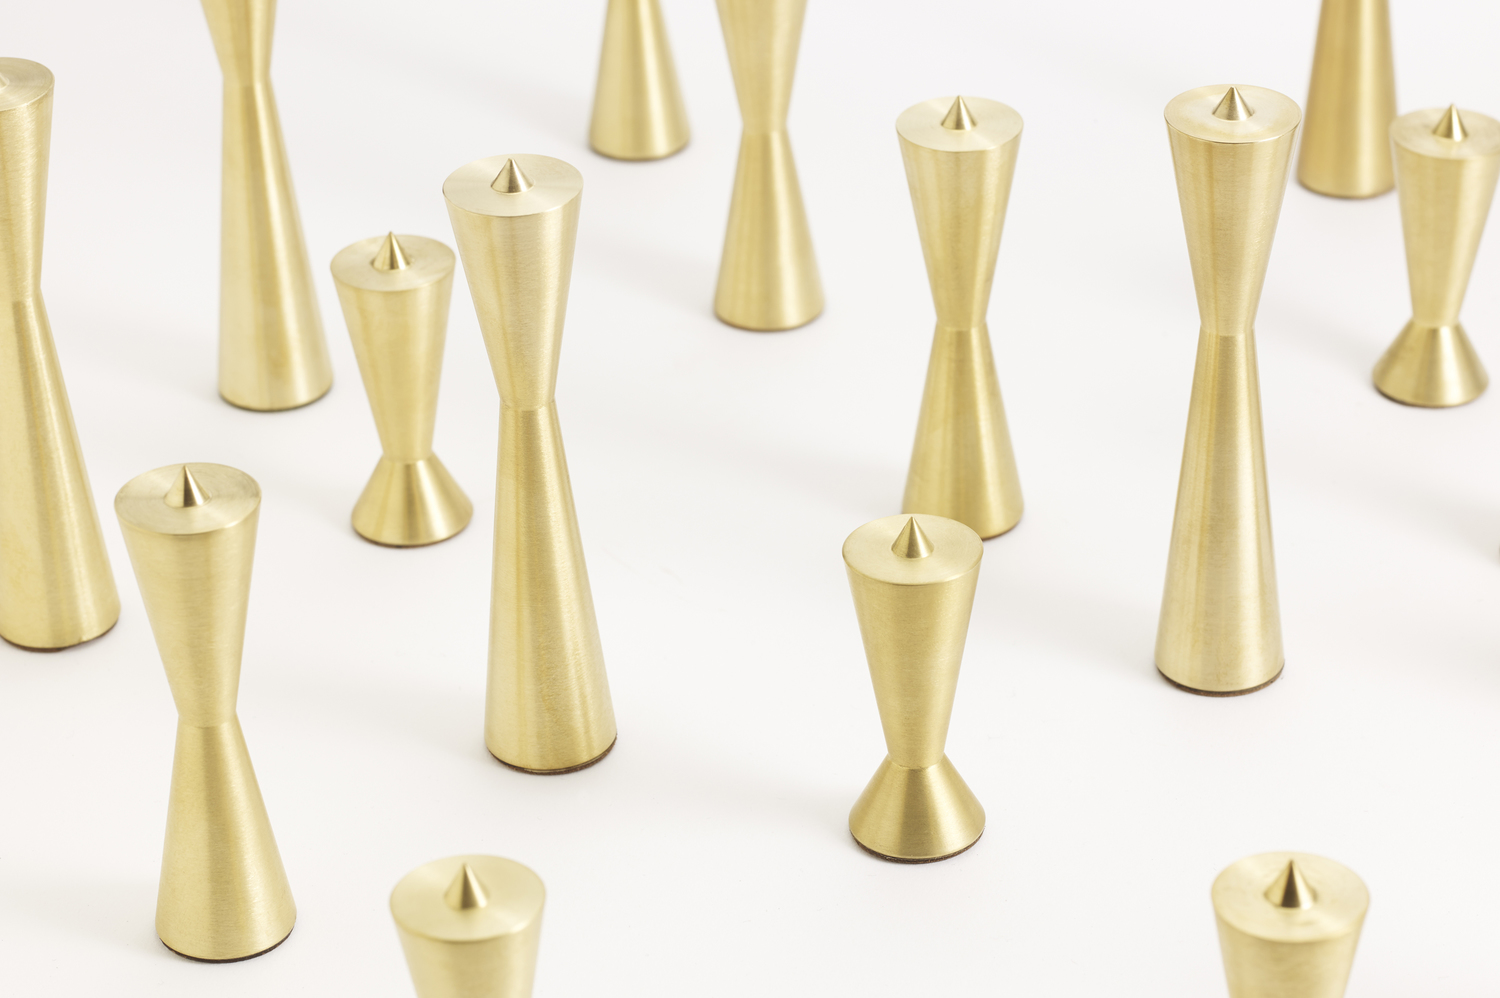 Candlestix by avandi repetition